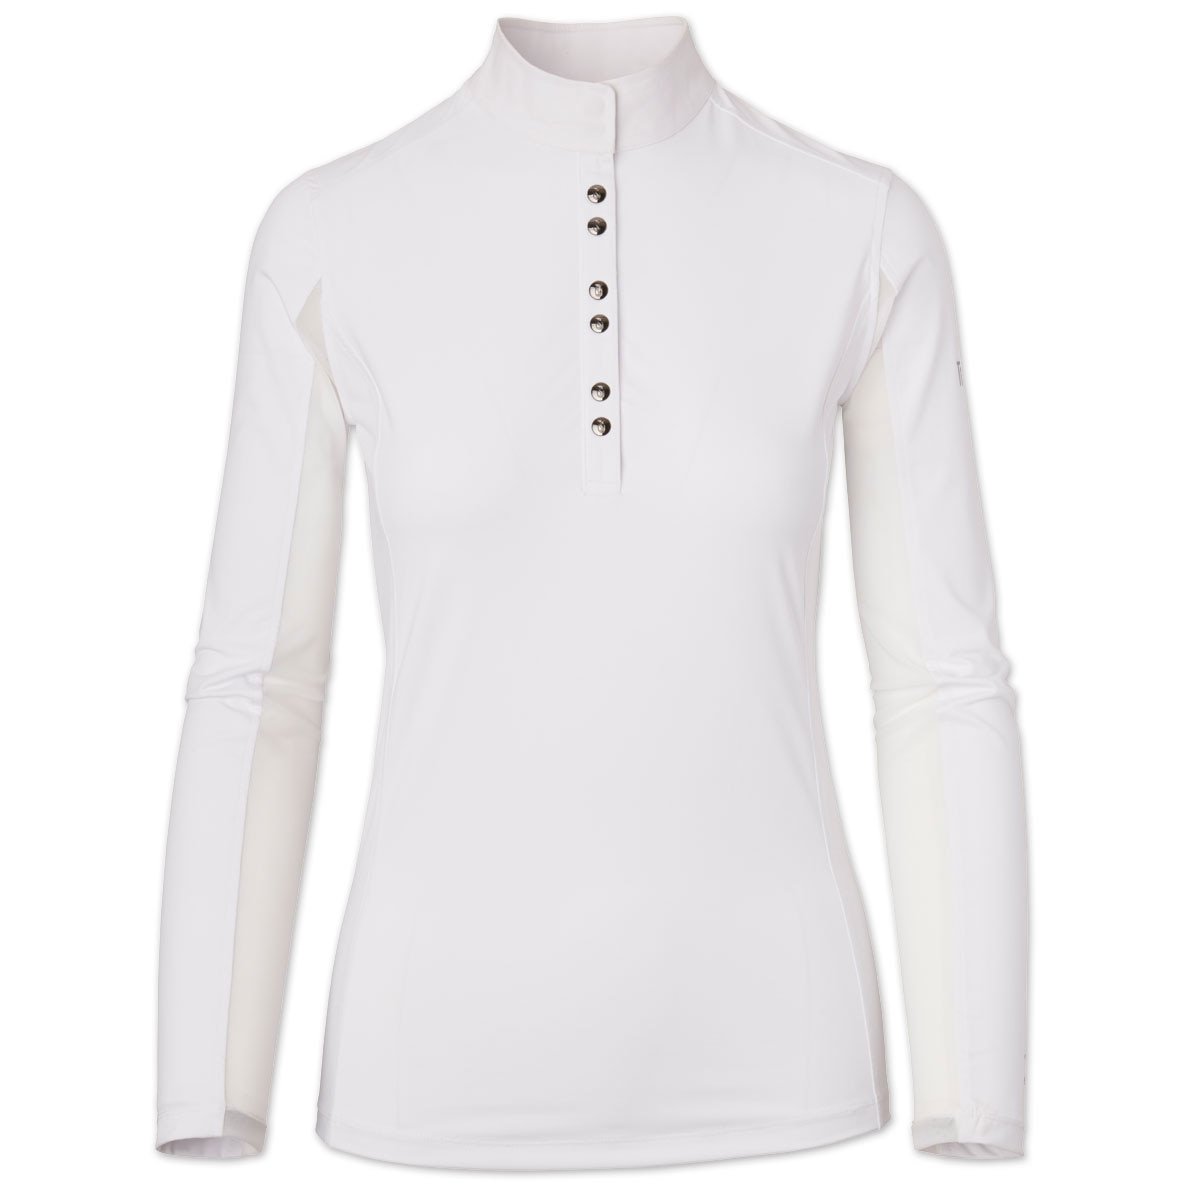 Tresdstep Solo Air Long Sleeve Competition Shirt